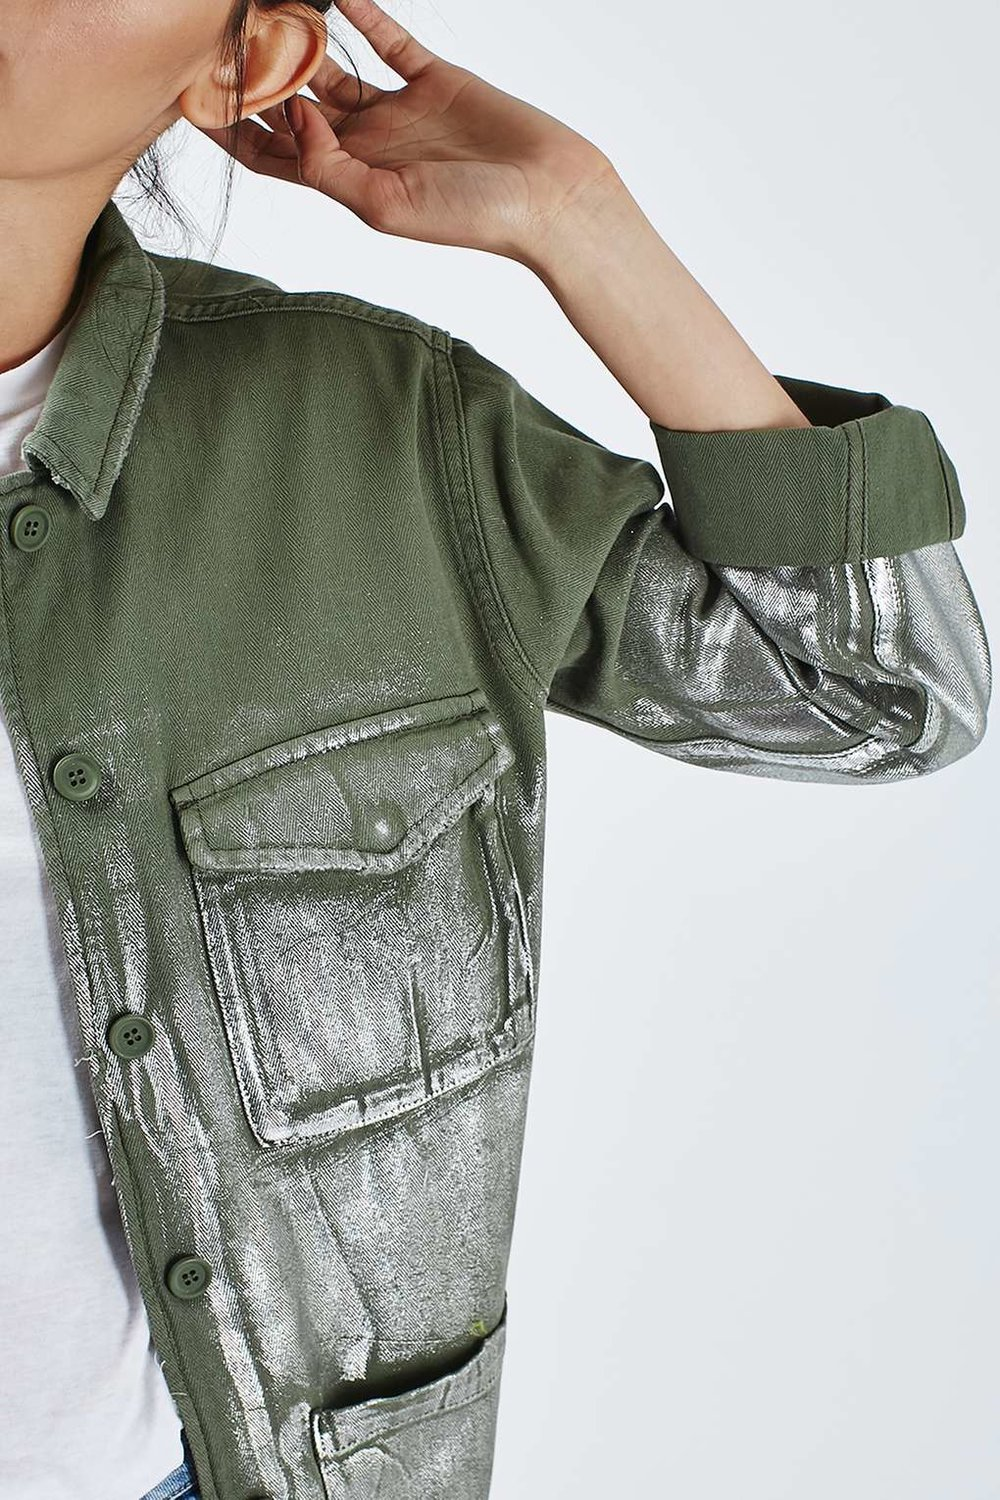 topshop-Foil-Detailed-Lightweight-Shacket-pocket-outstyled.jpg